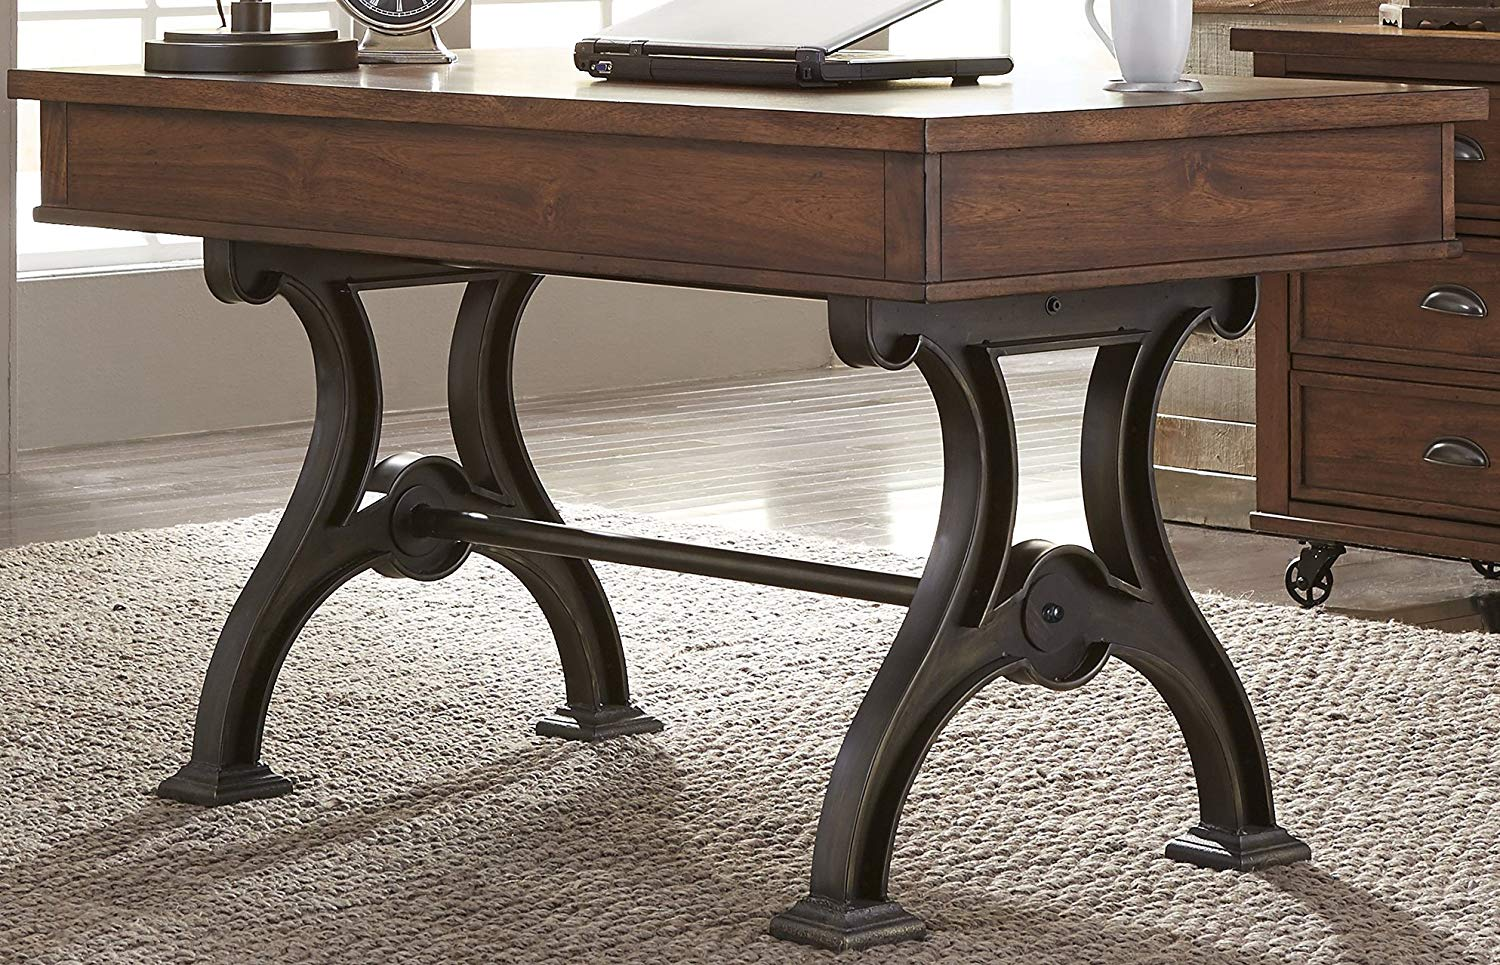 "Liberty Furniture INDUSTRIES 411-HO107 Arlington House Home Office Writing Desk, 56"" x 30"" x 31"", Cobblestone Brown"